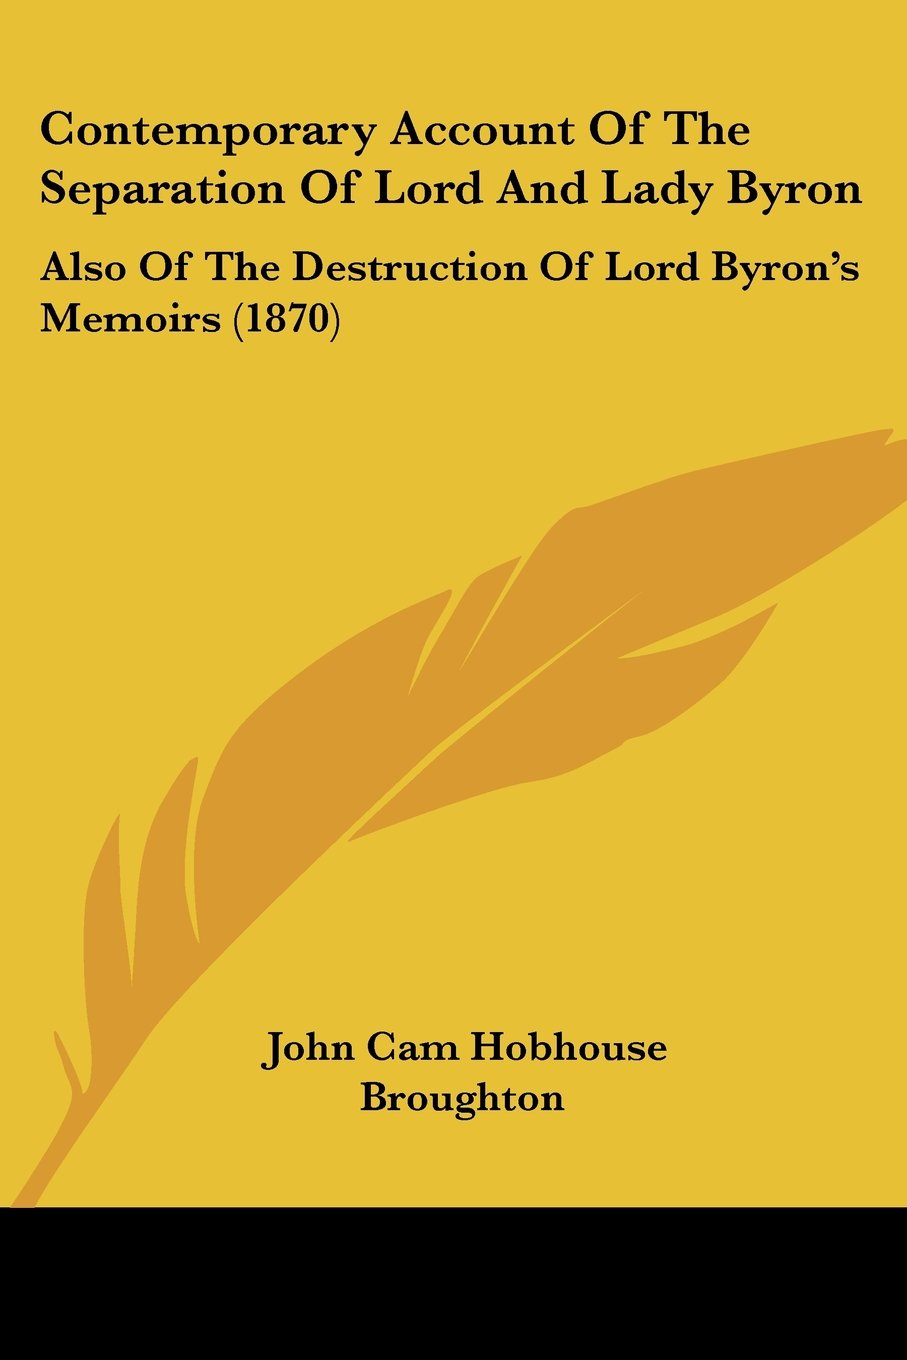 Contemporary Account of the Separation of Lord and Lady Byron: Also of the Destruction of Lord Byron's Memoirs (1870) pdf